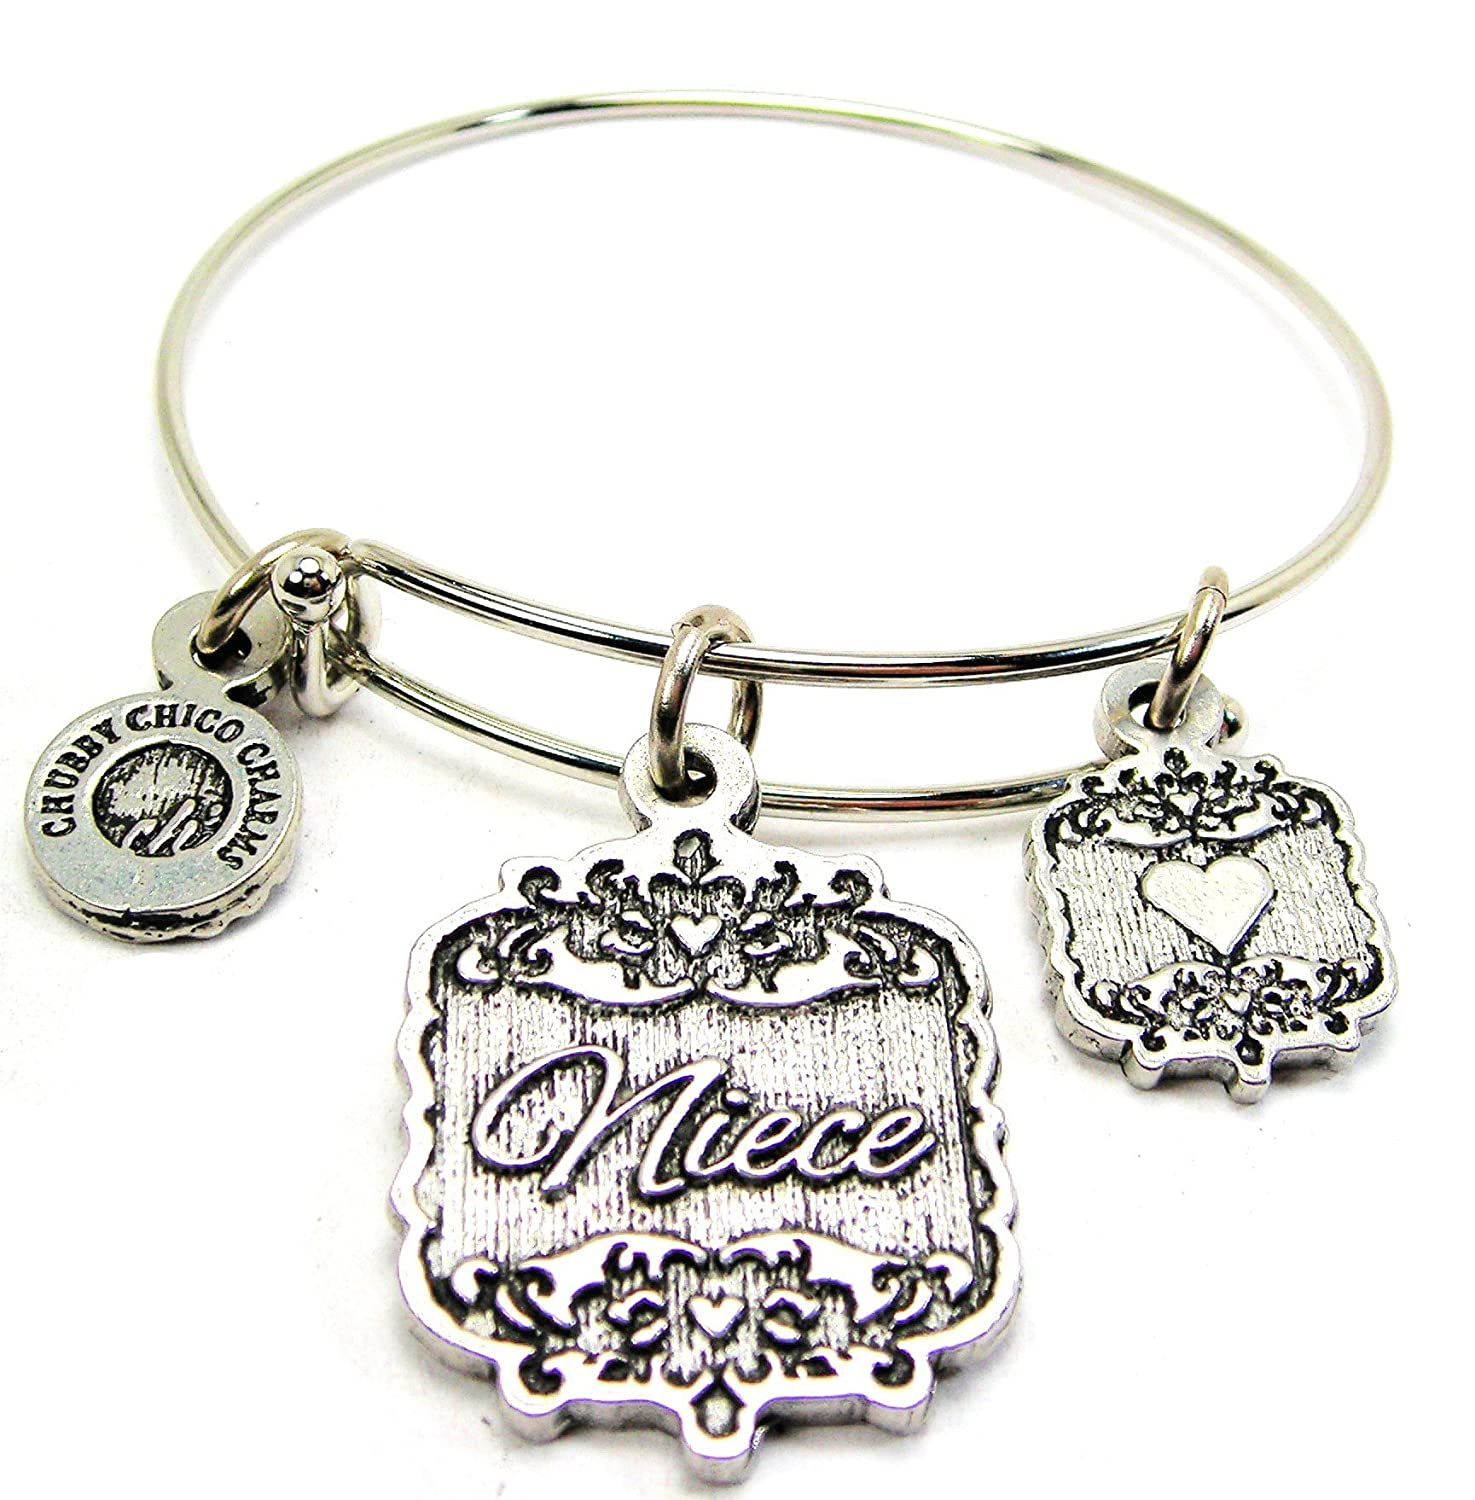 2.5 Chubby Chico Charms Niece Victorian Scroll Expandable Wire Bangle